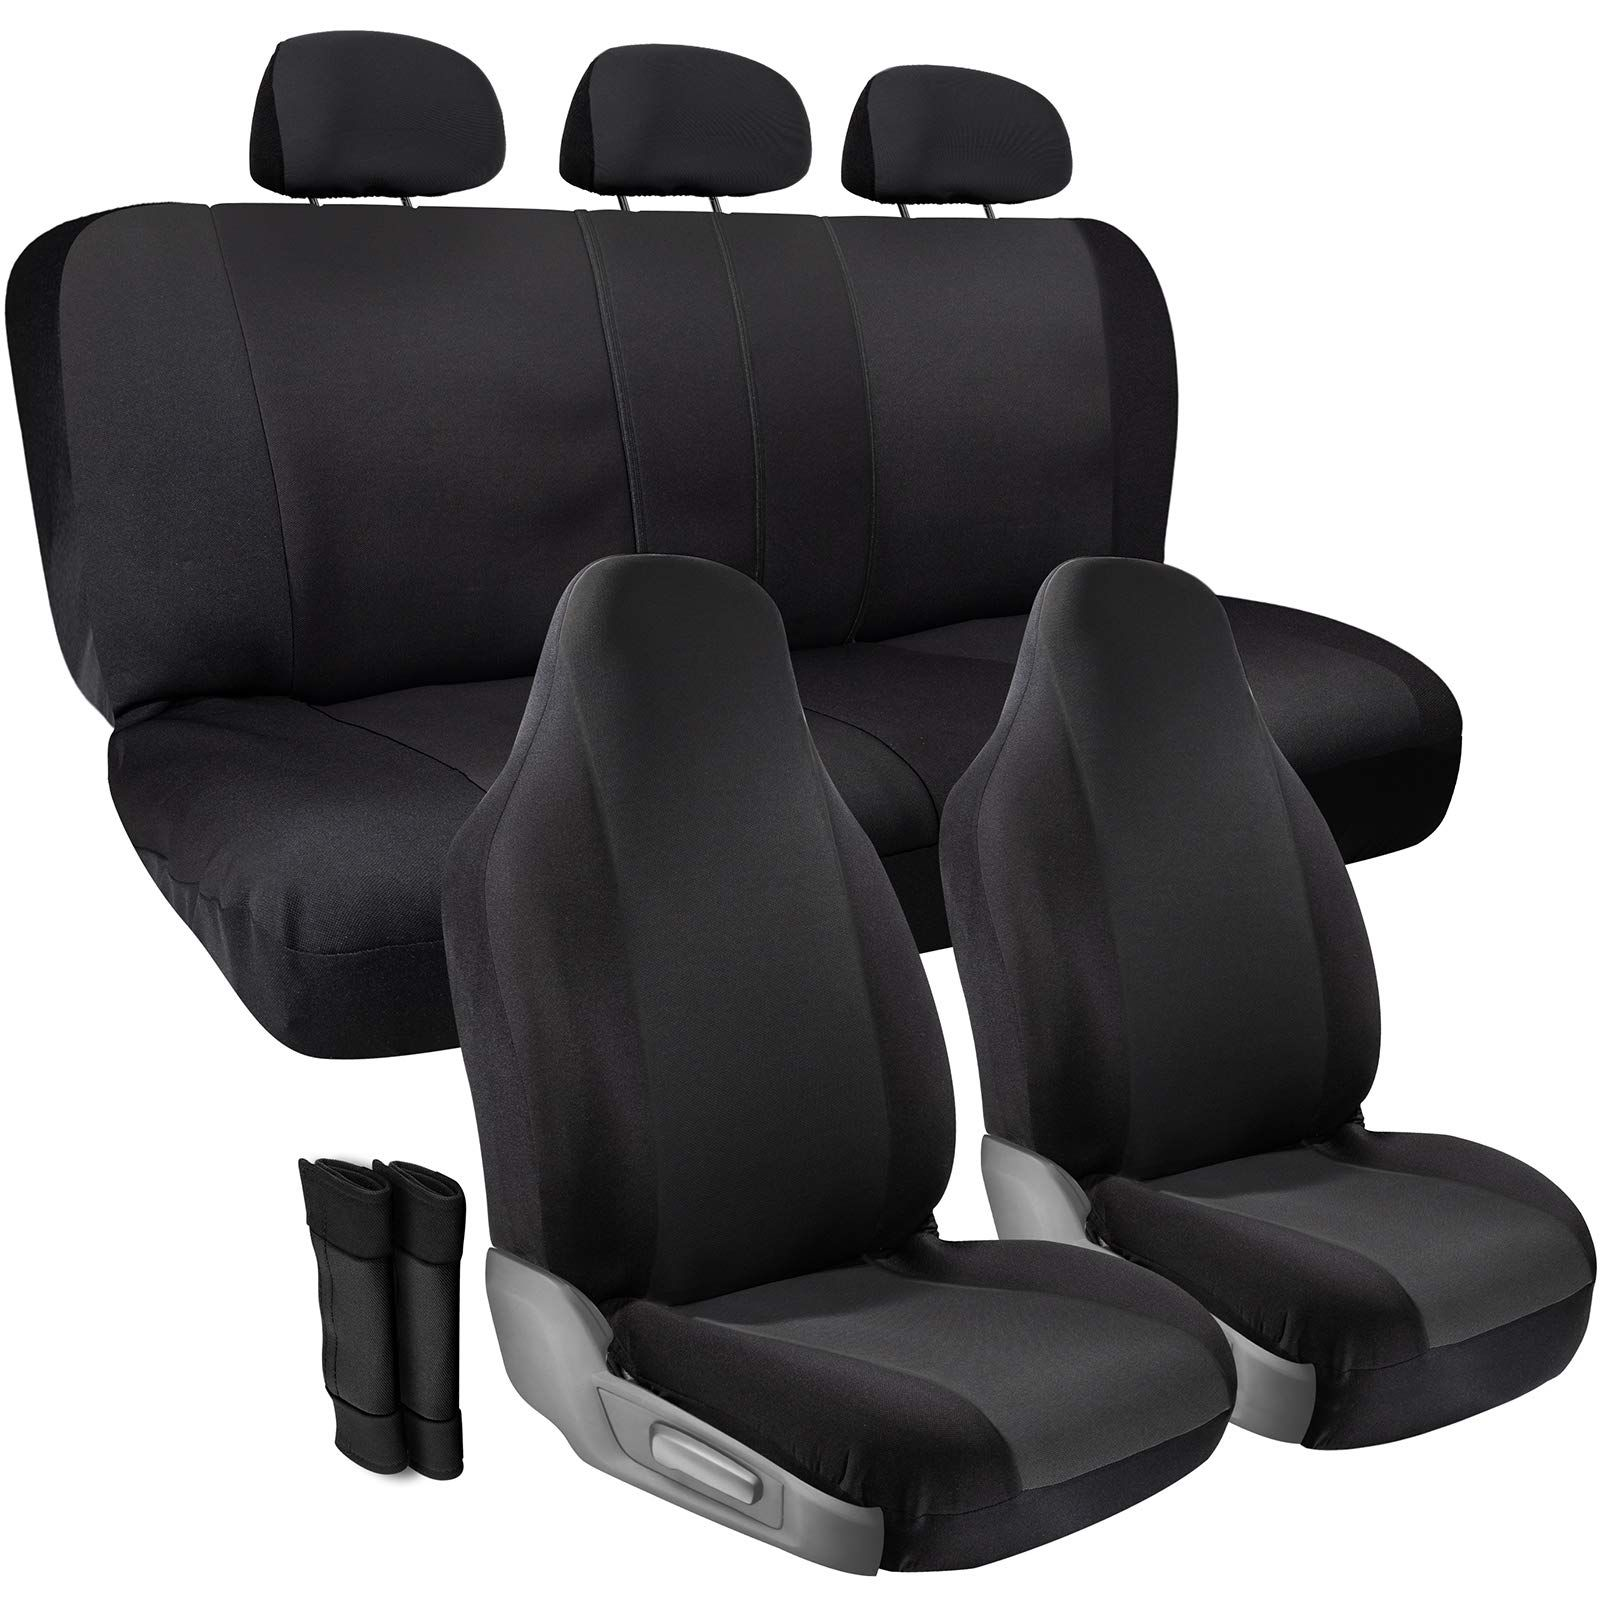 Car seat covers fit Toyota Prius full set black leatherette//polyester